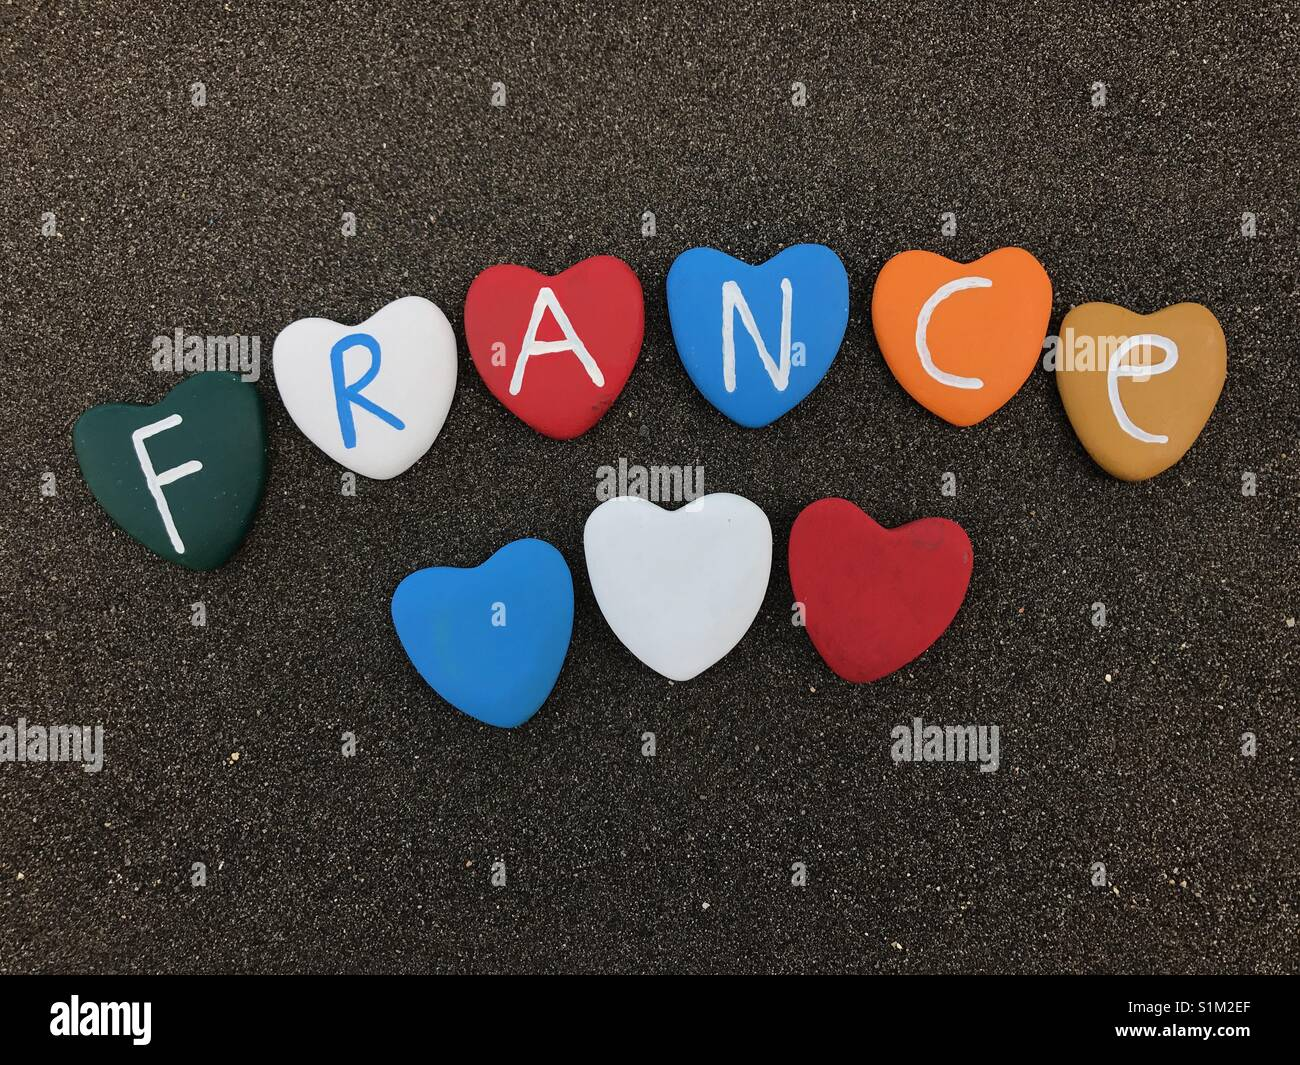 France, country name with painted heart stones over black volcanic sand Stock Photo